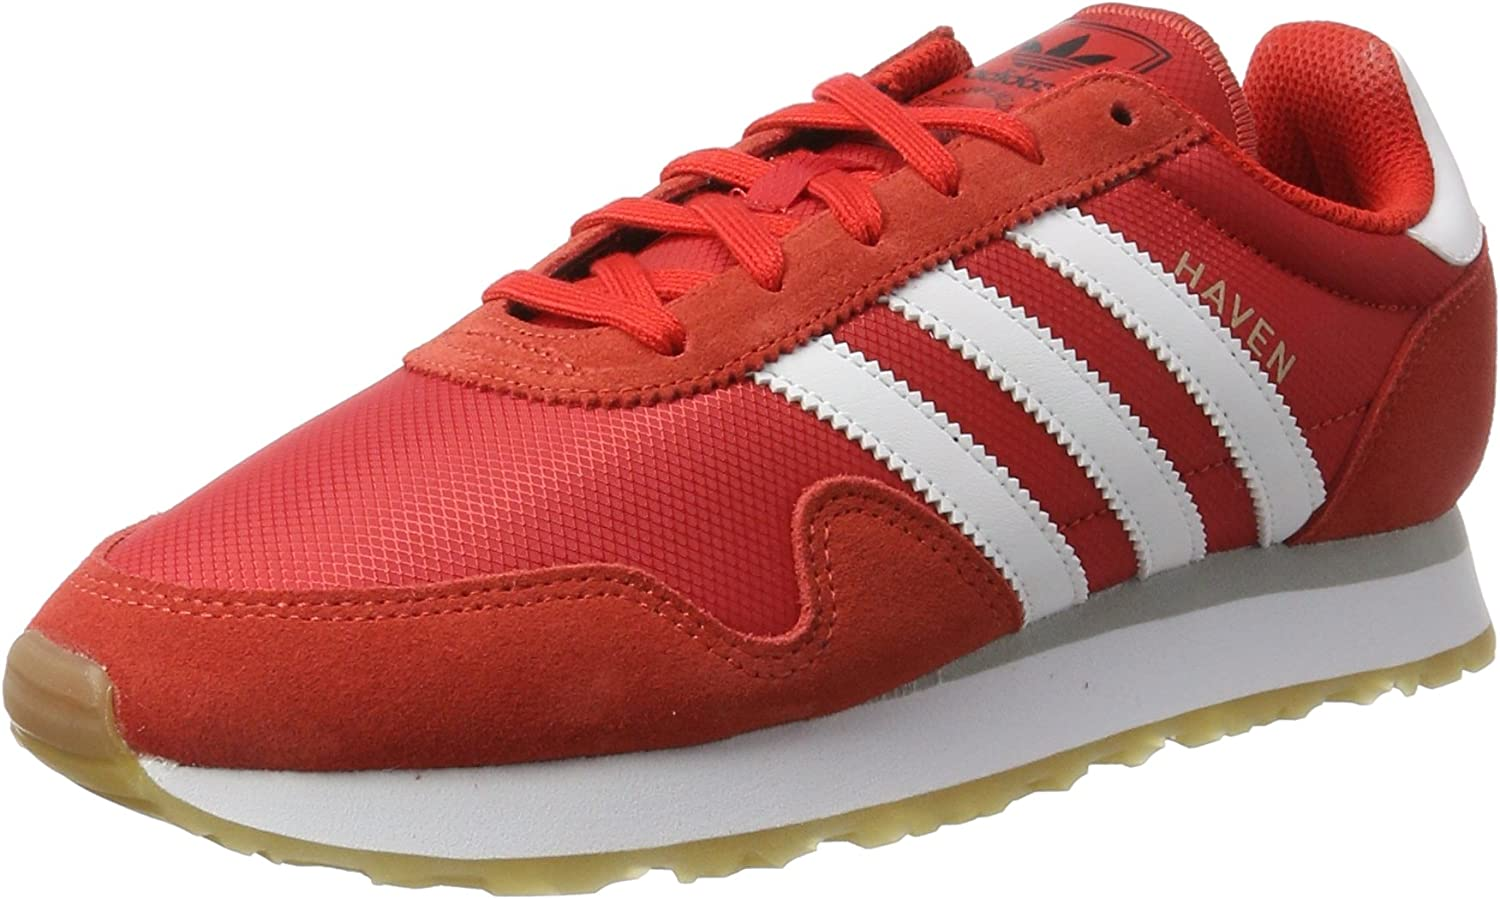 Adidas Men's Haven Fitness shoes